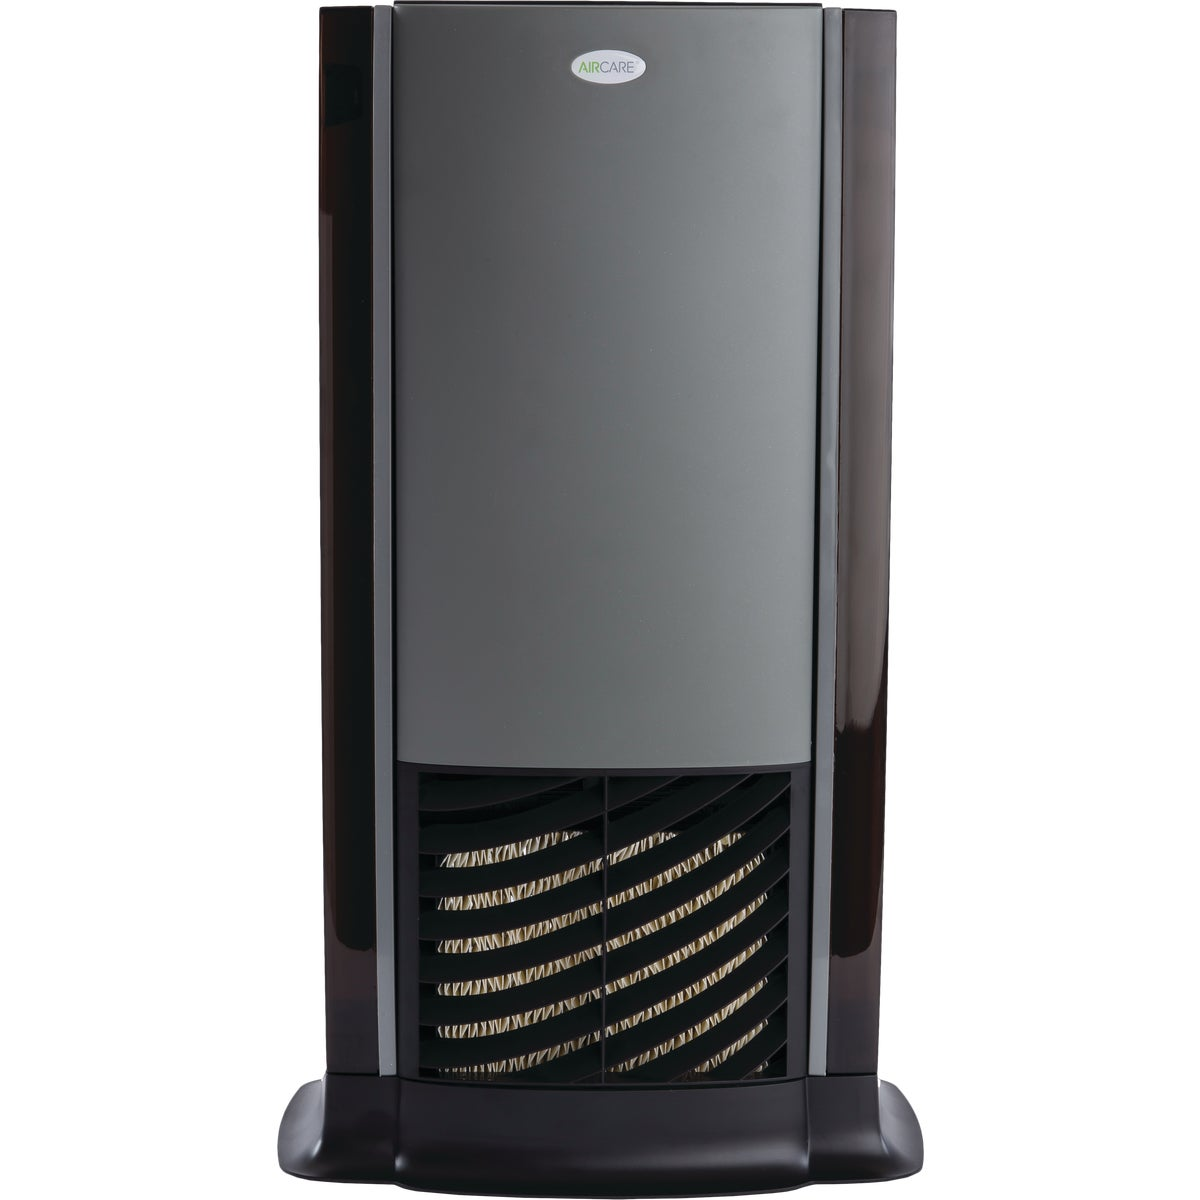 6GPD TOWER HUMIDIFIER